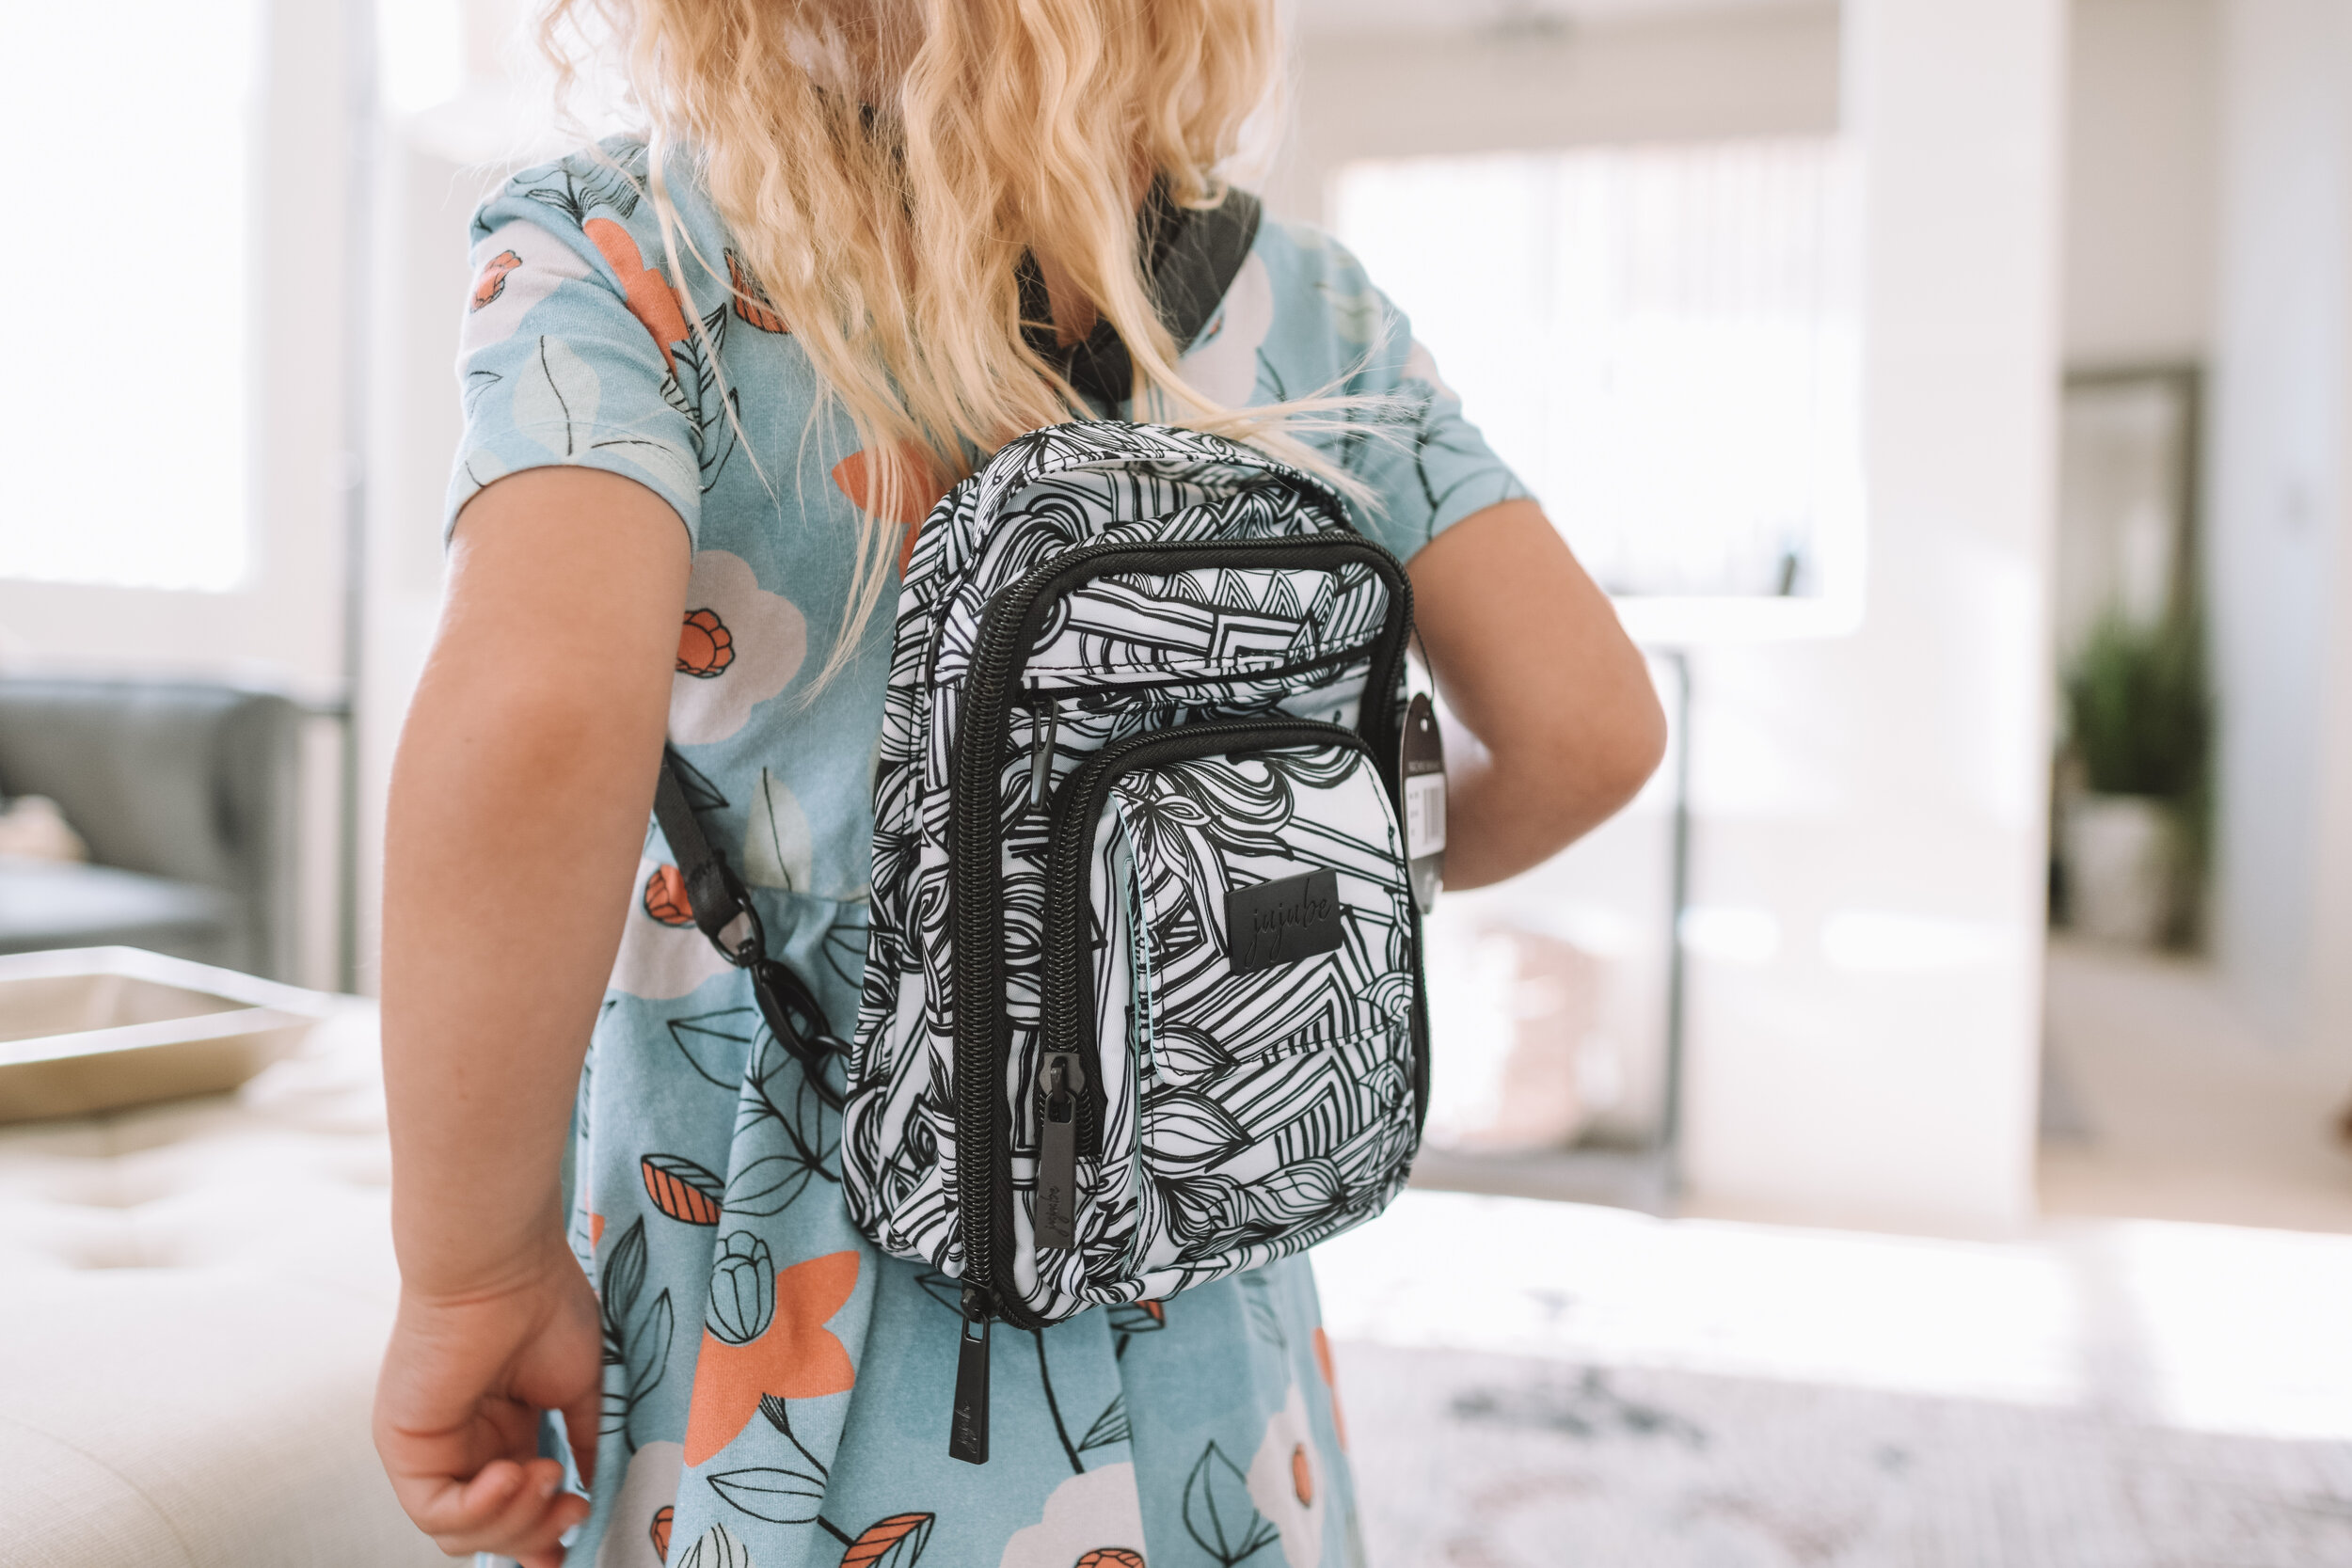 JuJuBe Sketch Mini Be Right Back BRB - The Overwhelmed Mommy Blogger